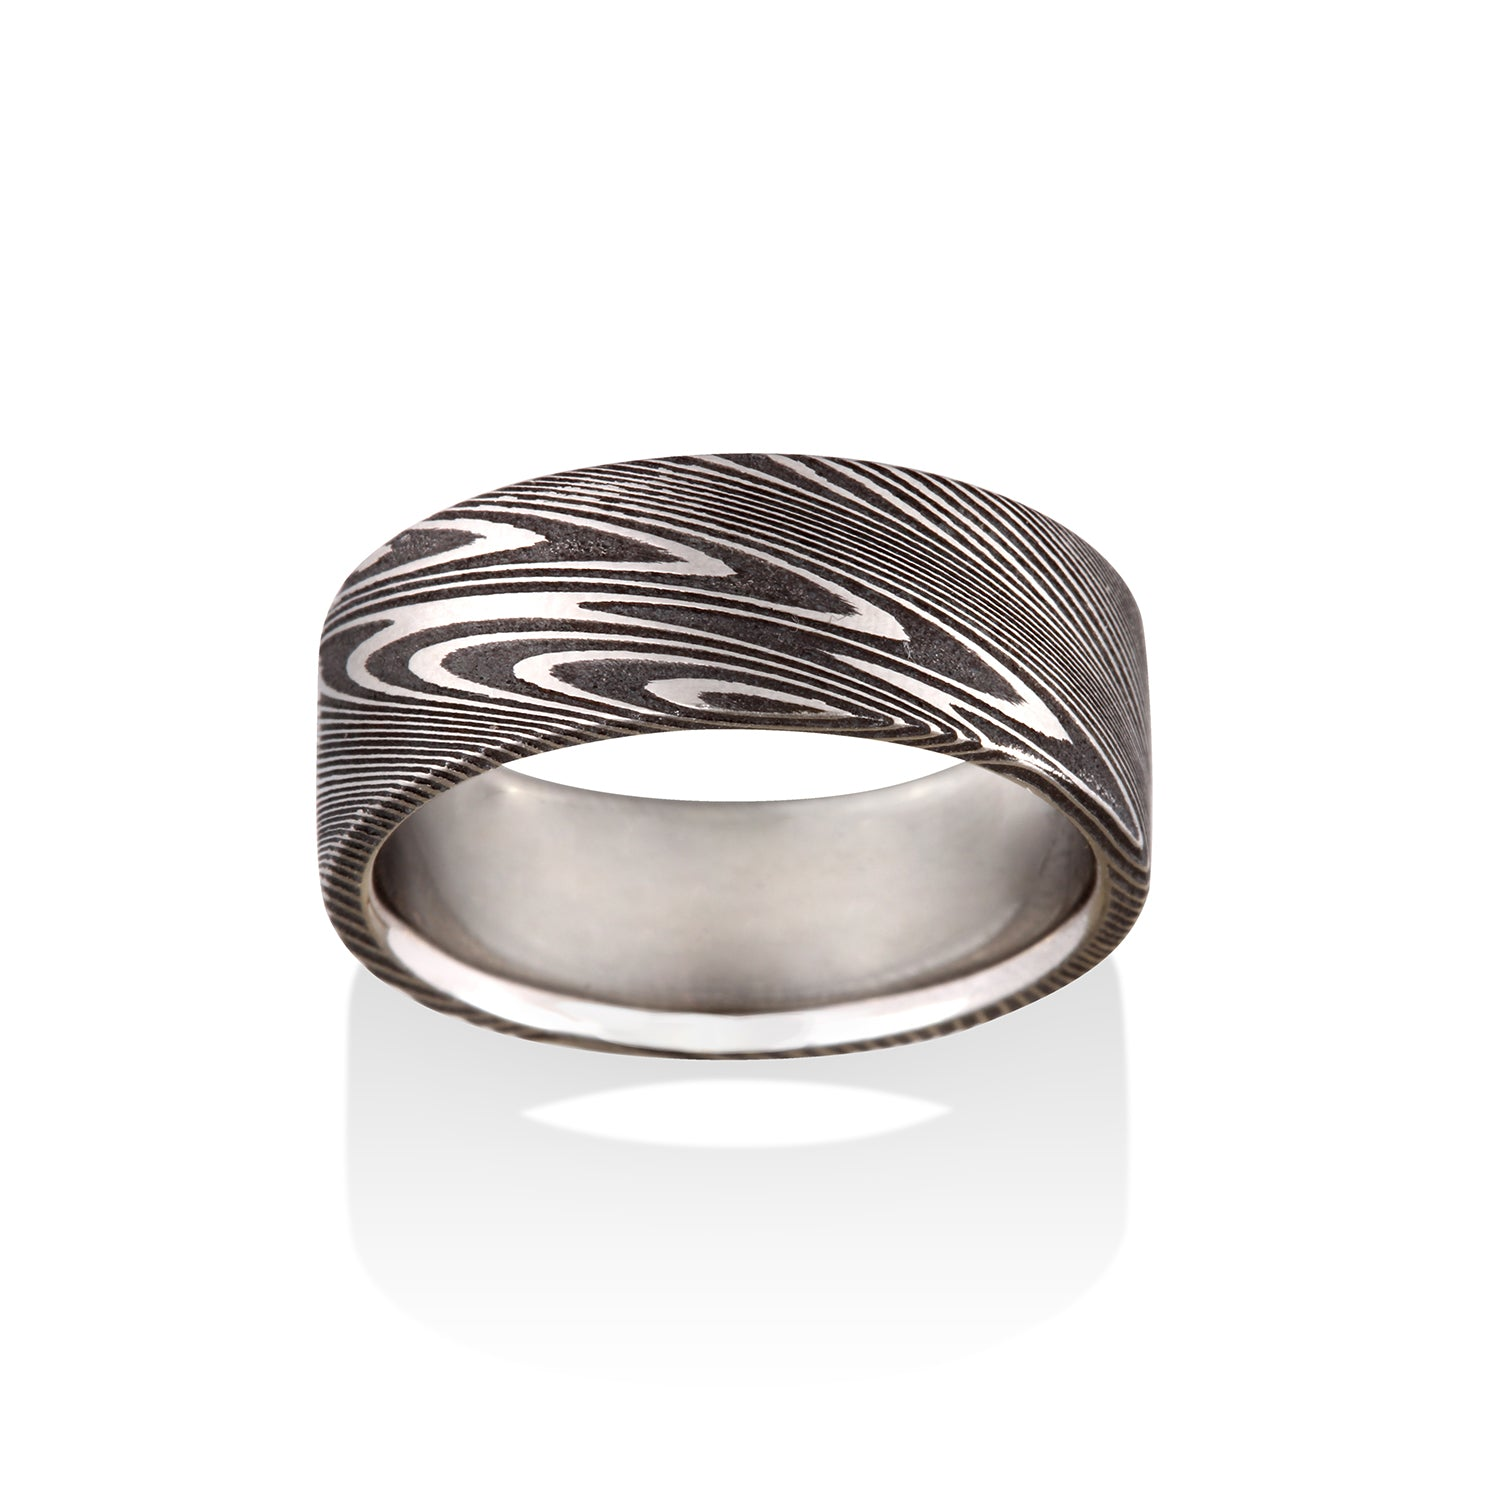 Thor Oxidized Damascus Steel Ring by Chris Ploof - Talisman Collection Fine Jewelers